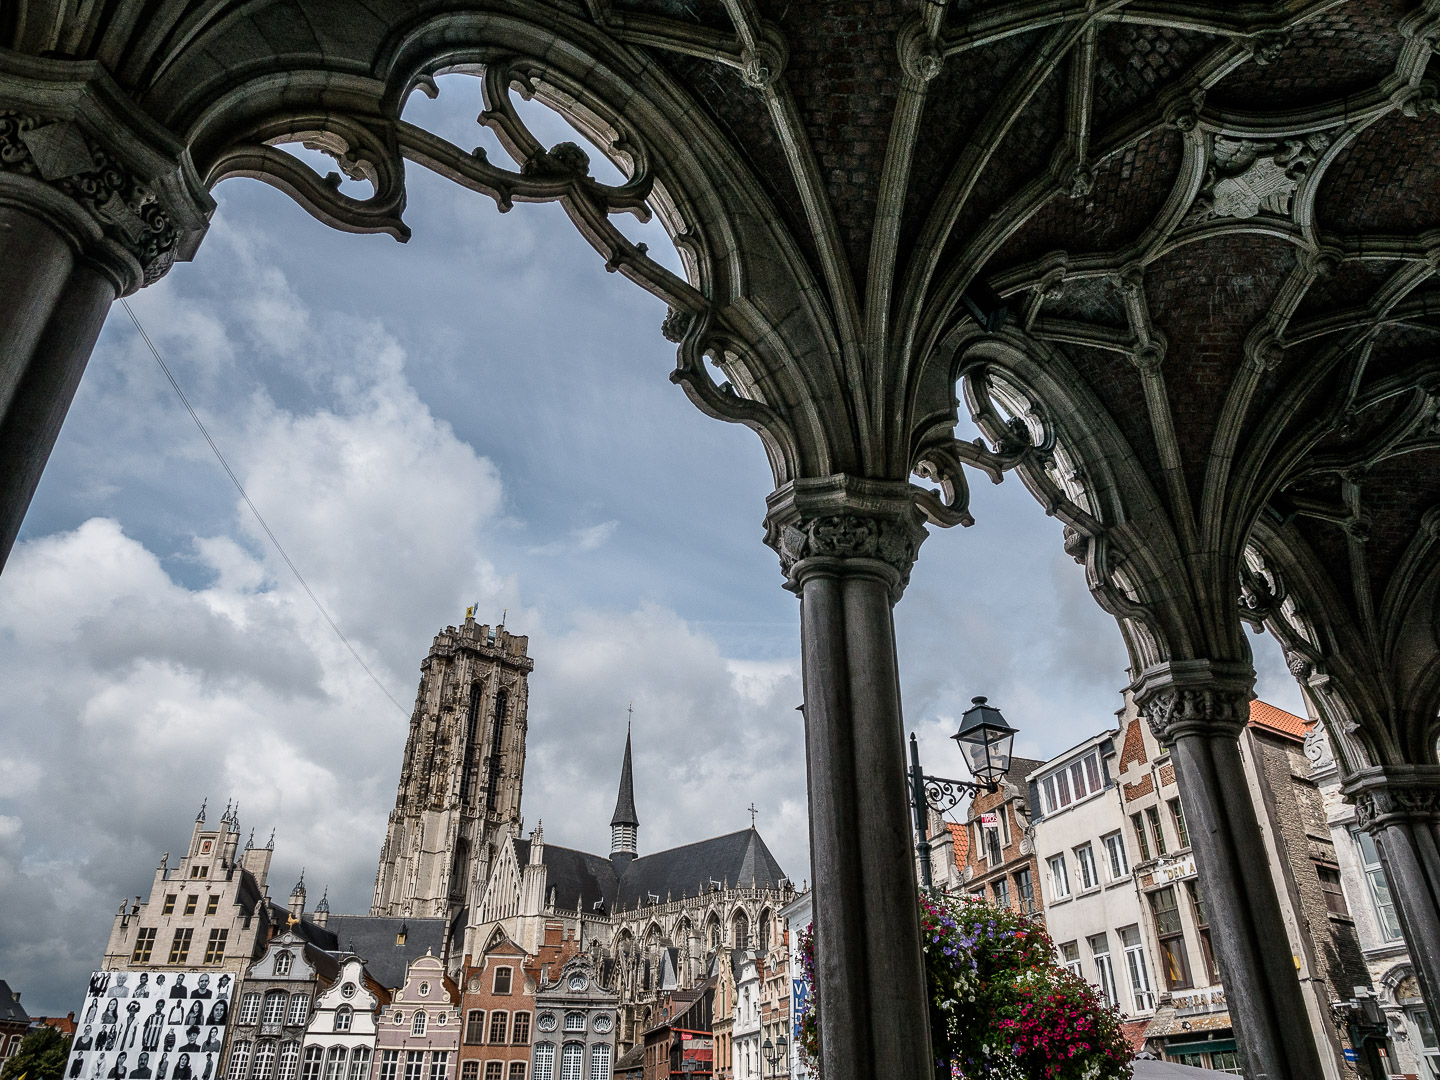 Grote Markt and Sint-Romboutskathedraal from under the City Hall